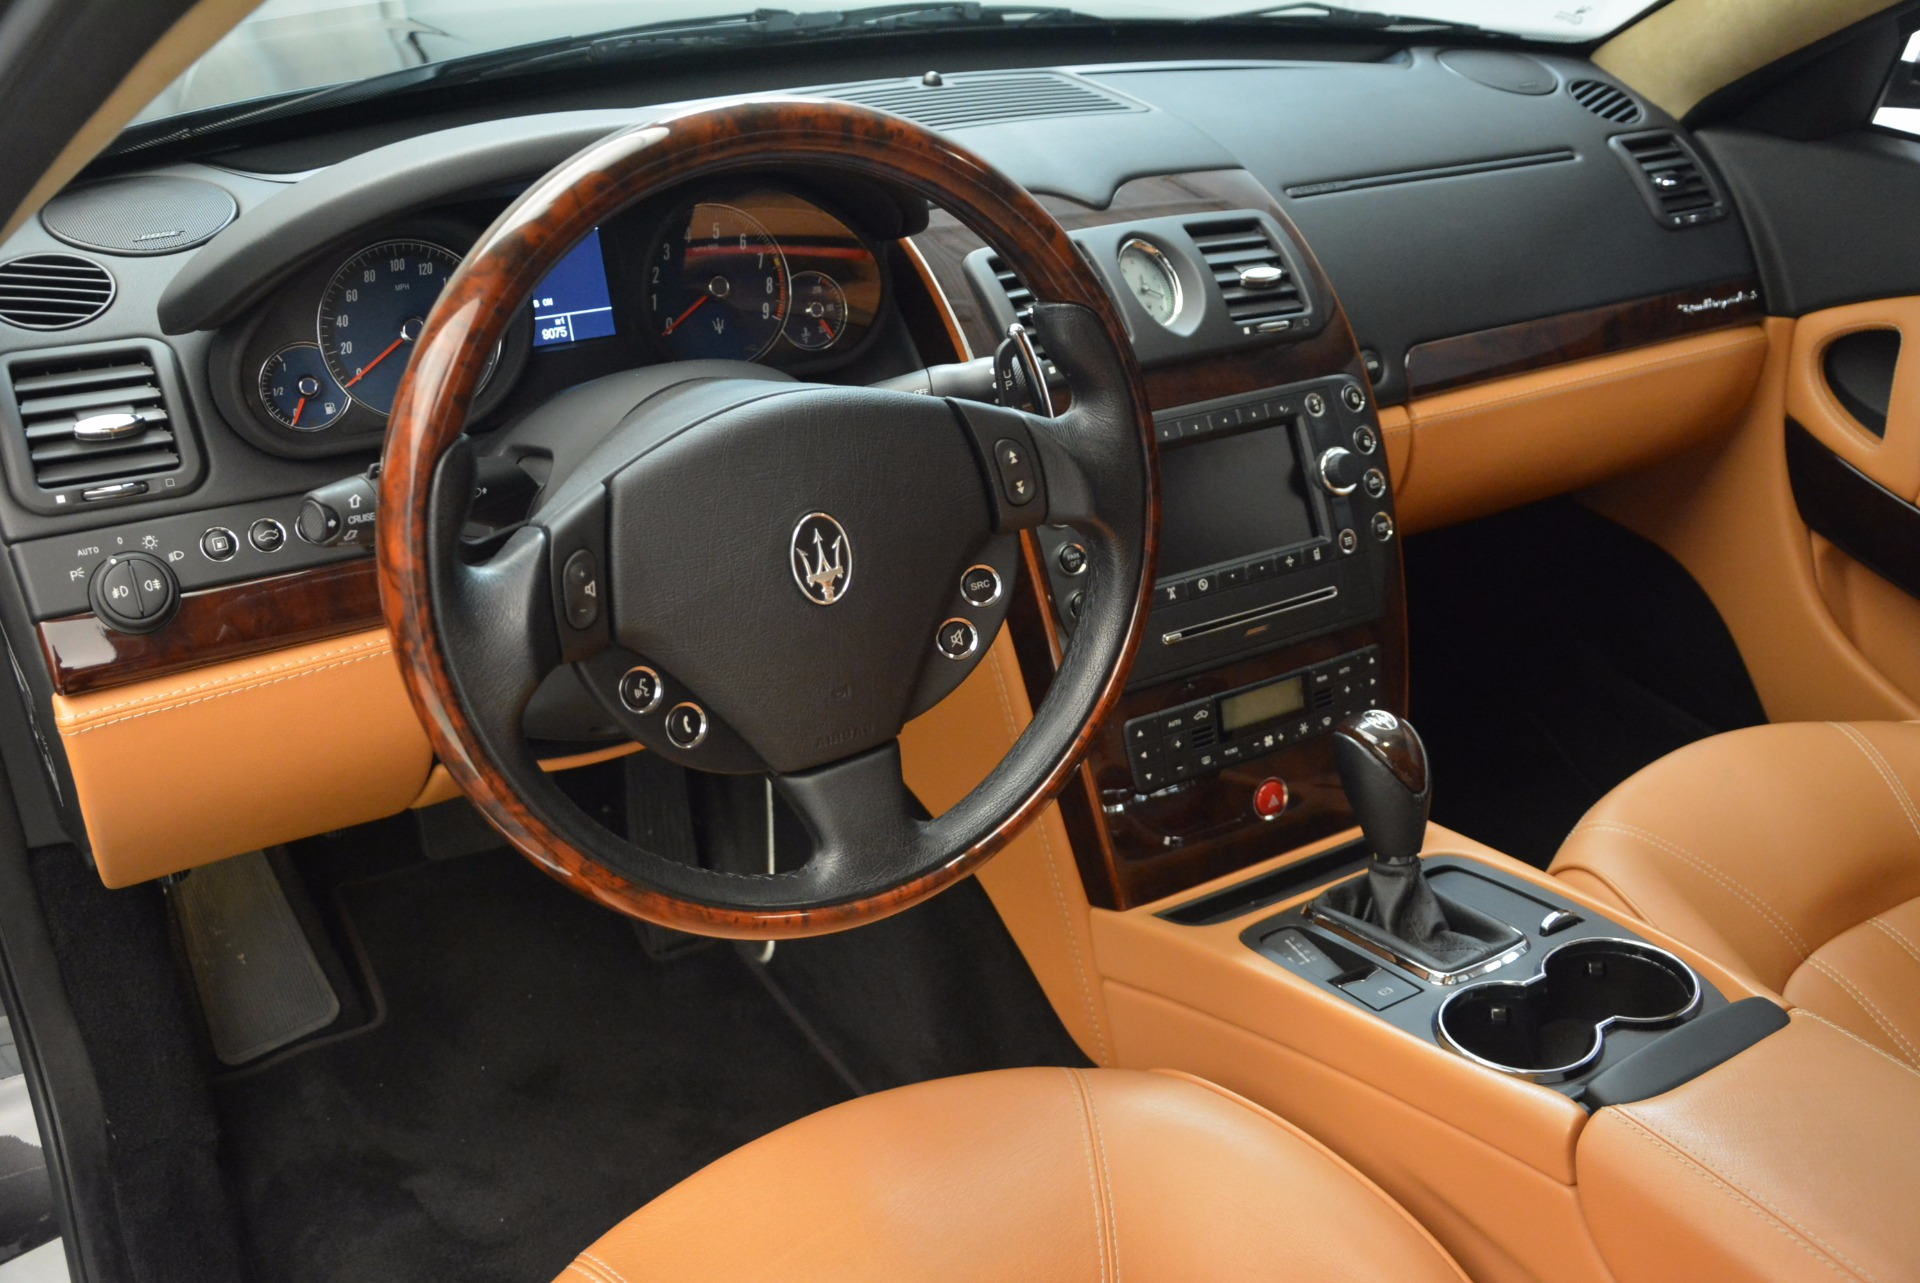 Used 2010 Maserati Quattroporte S For Sale In Westport, CT 1551_p25